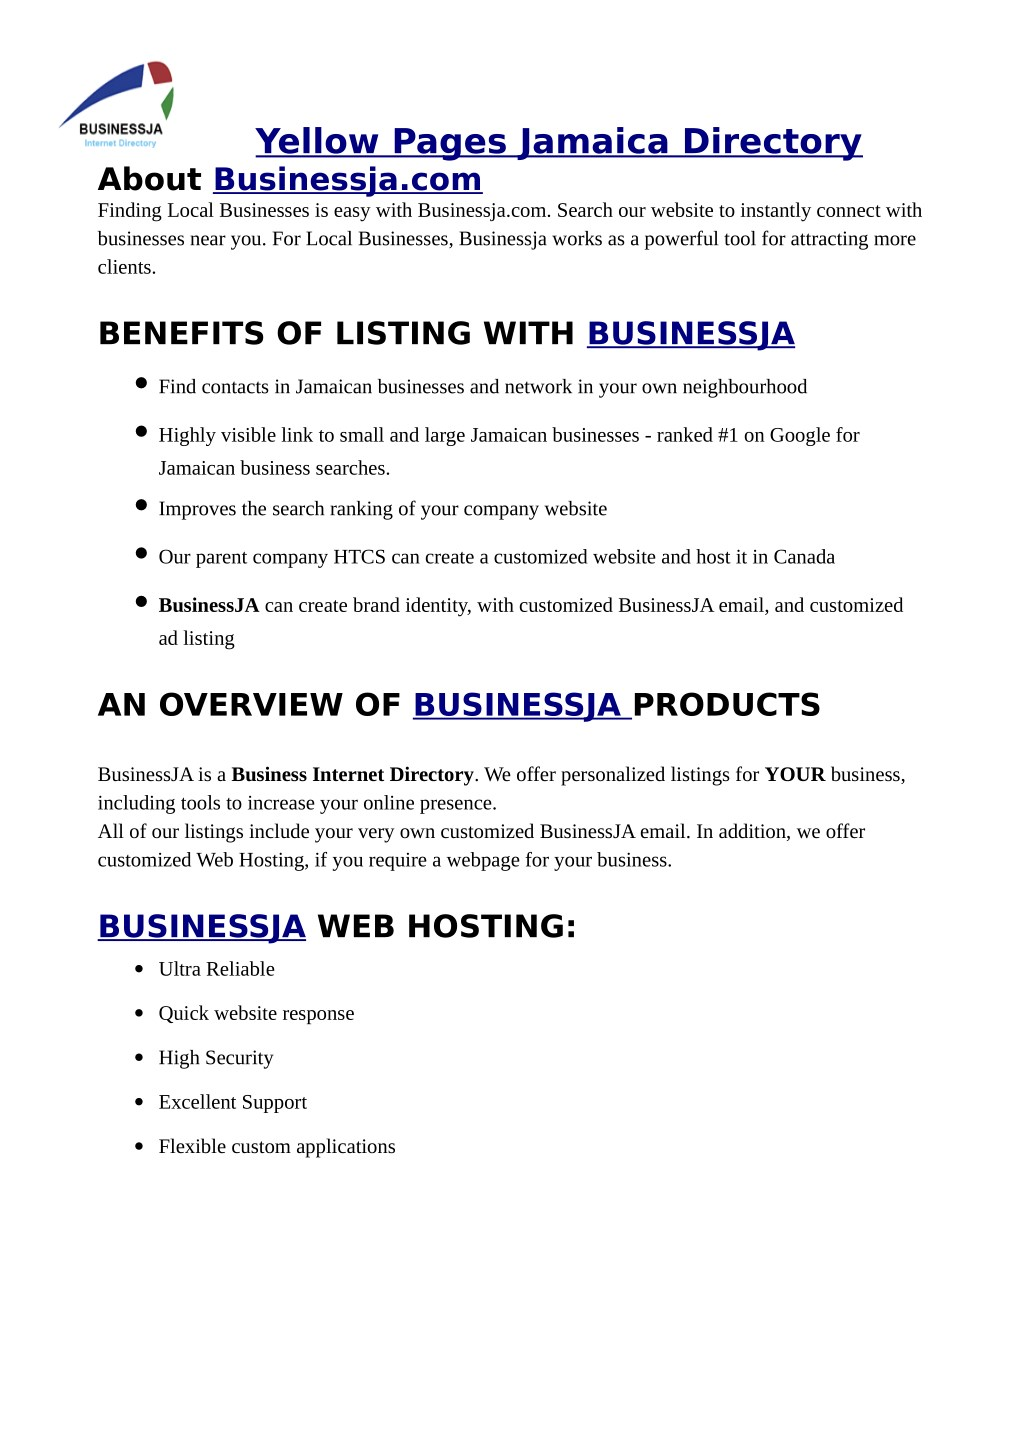 PPT - BusinessJA can provide information on Yellow Pages Jamaica